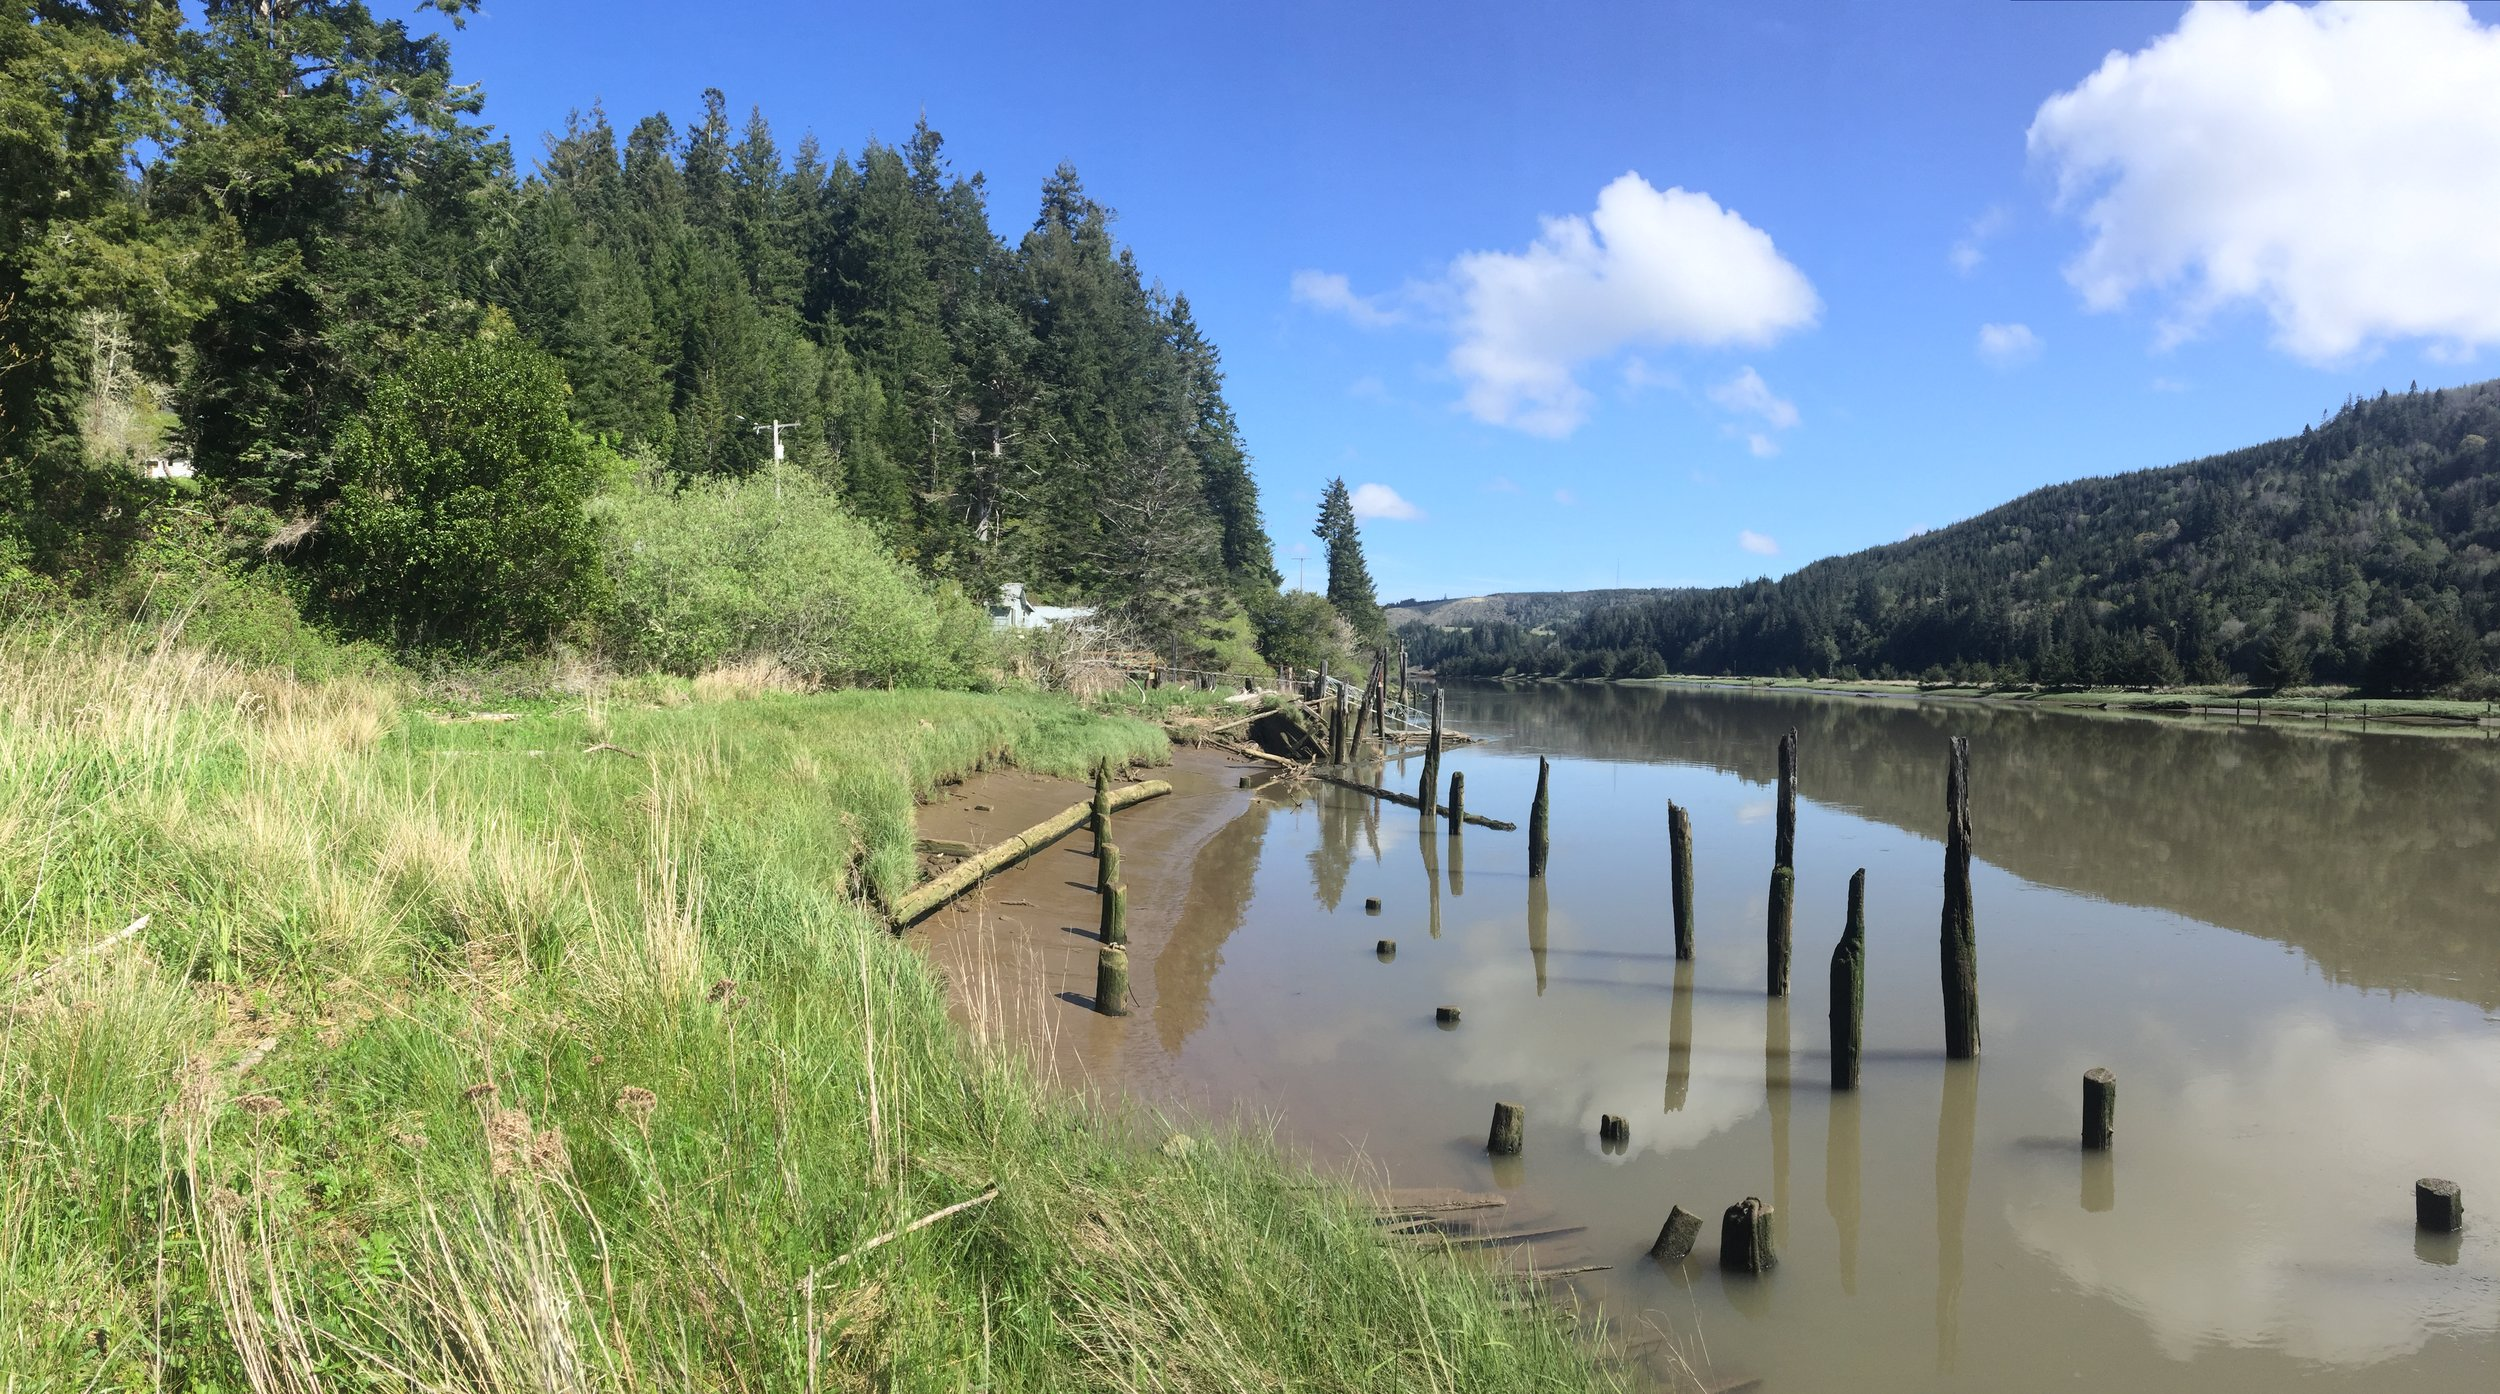 Remnants of the old boardwalk that lined the Coquille River